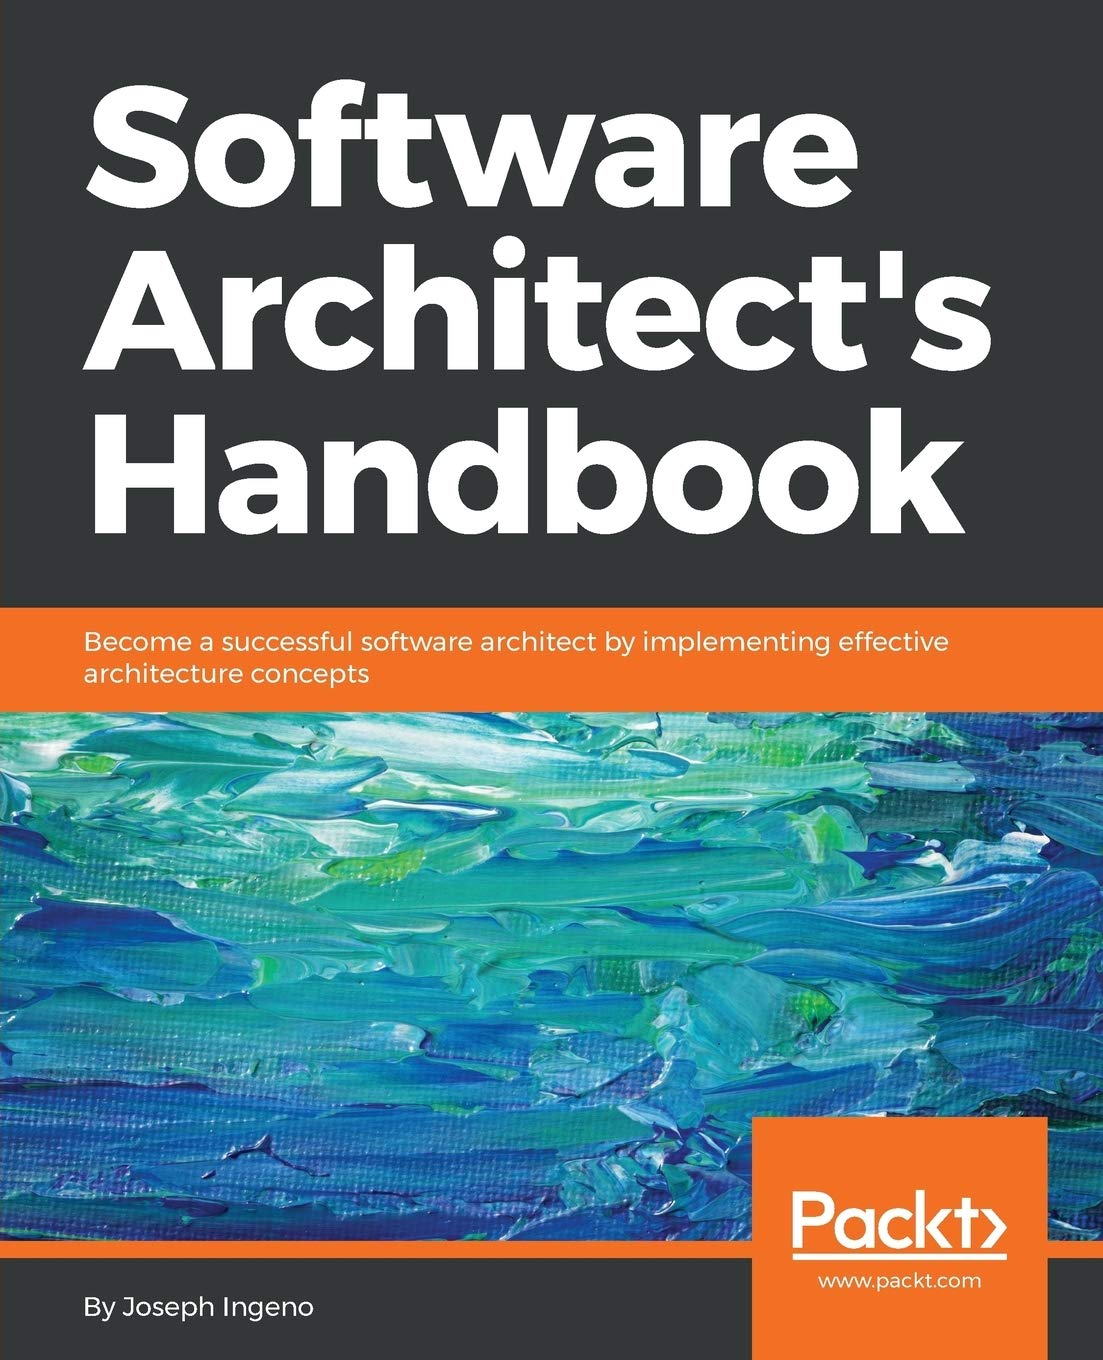 Software Architects Handbook Become a successful software architect by implementing effective architecture concepts